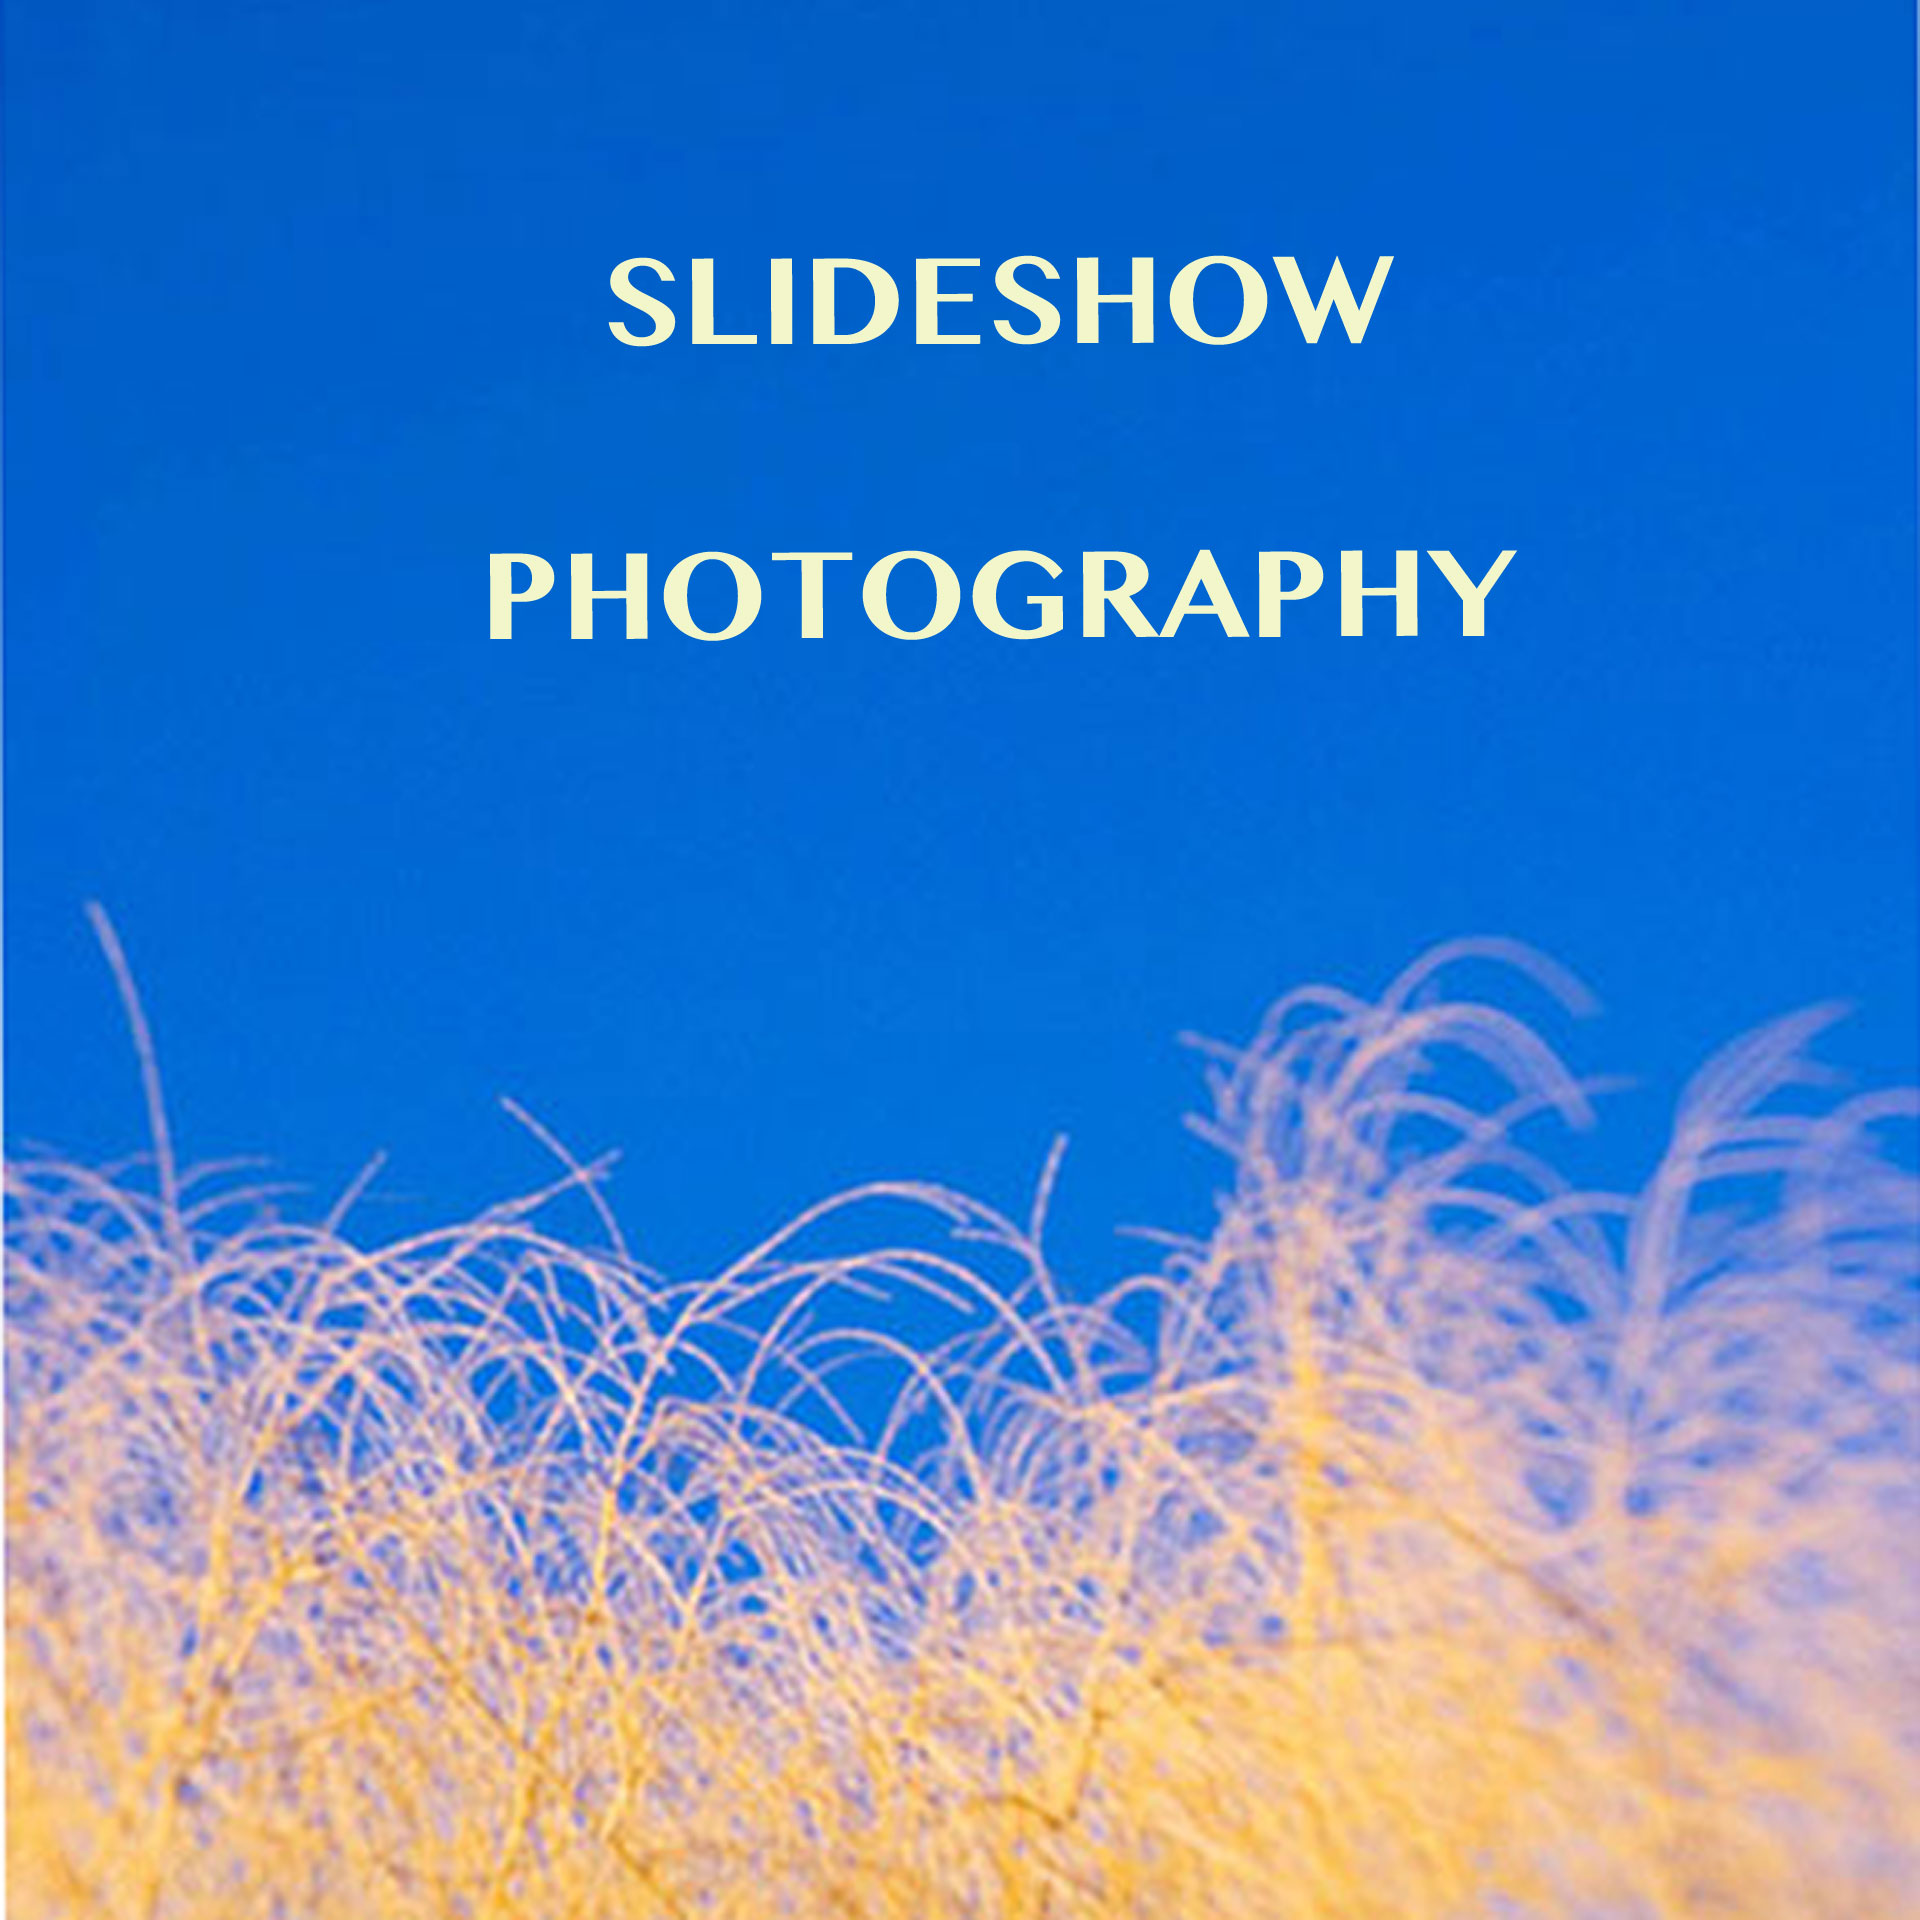 PHOTOGRAPHY SLIDESHOW IMAGE